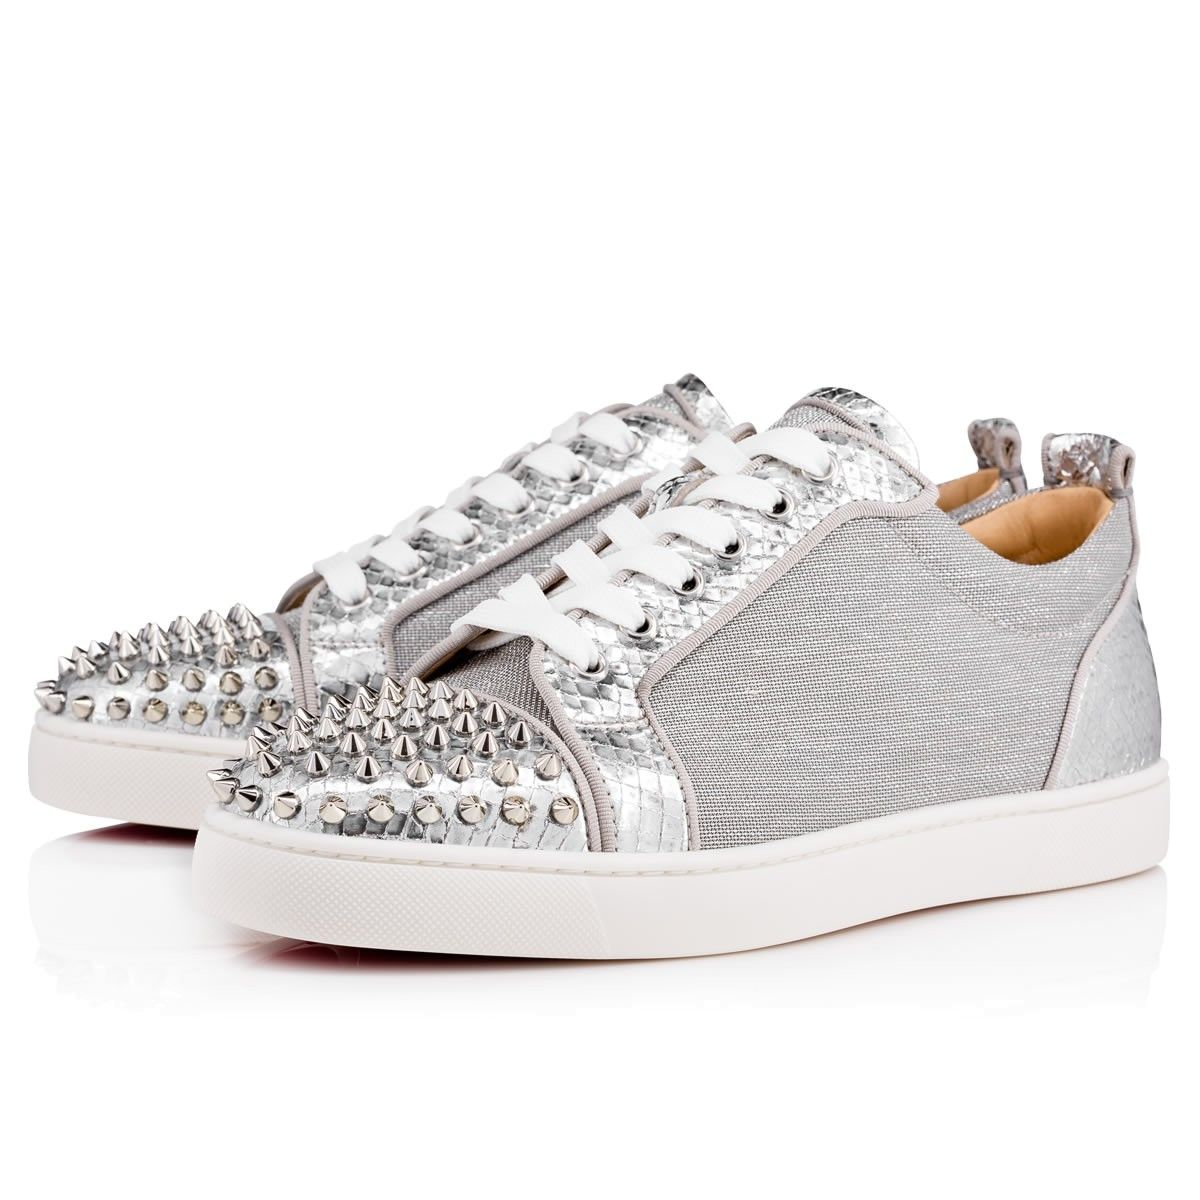 christian louboutin mens shoes nordstrom